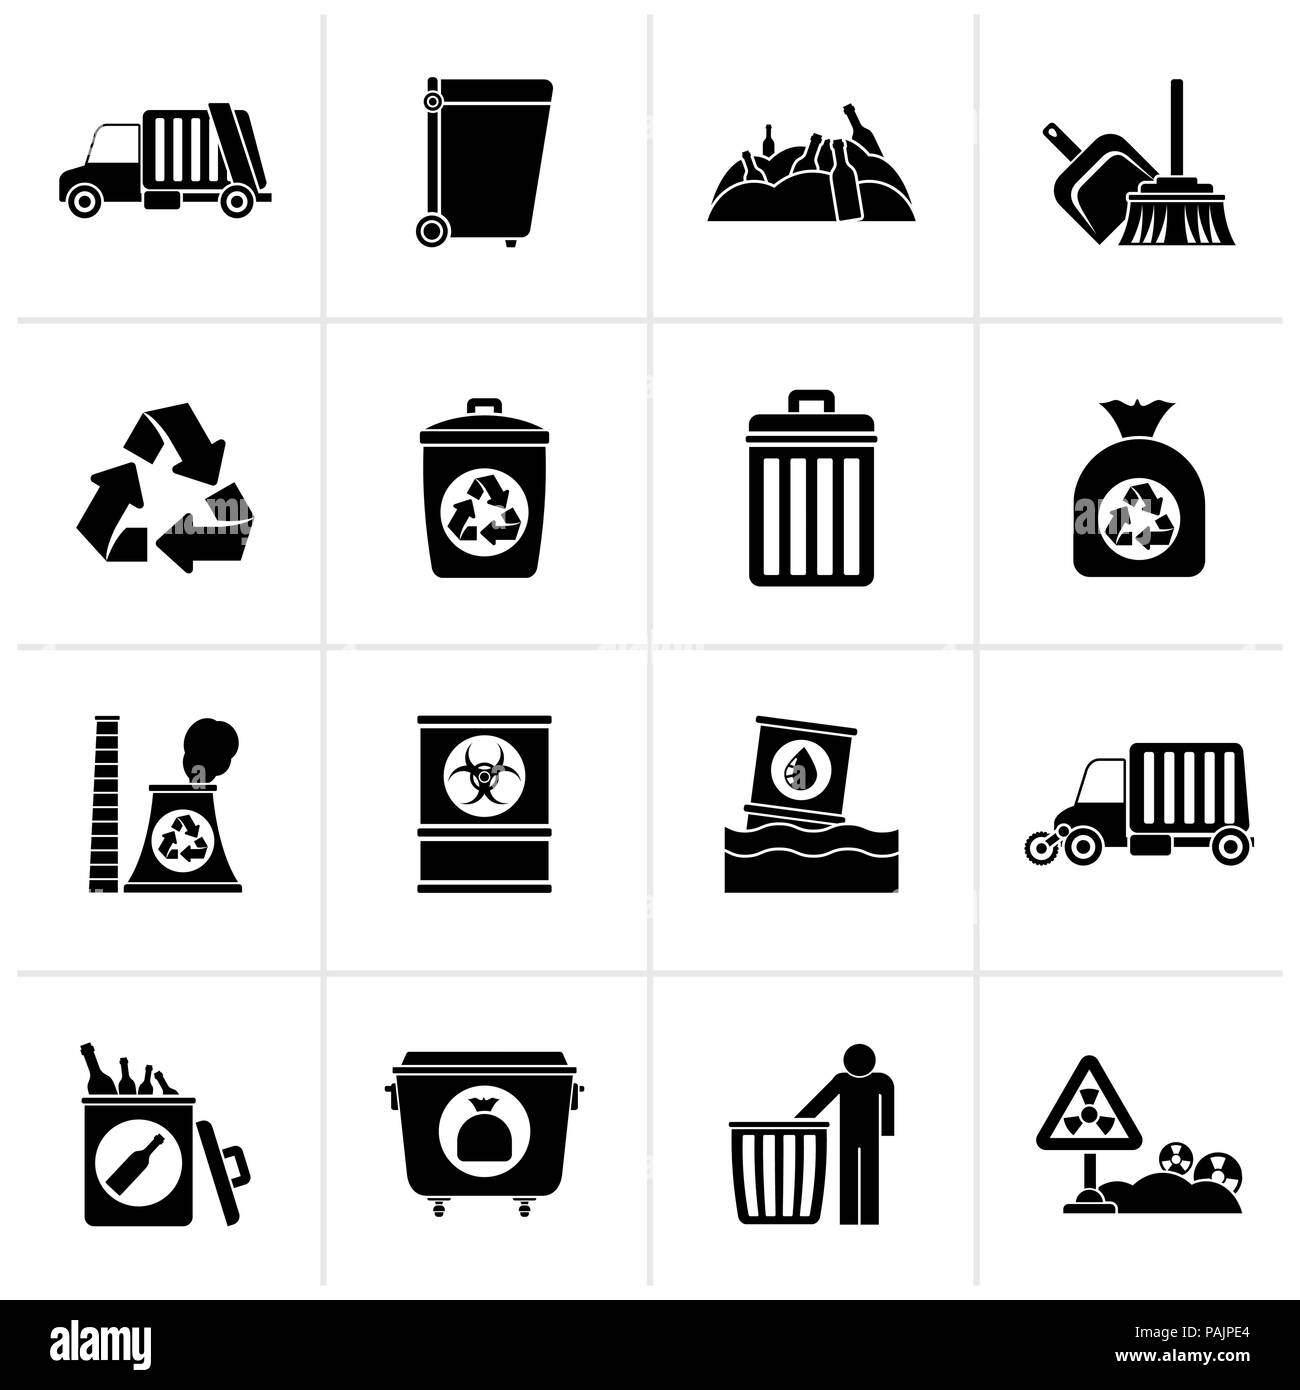 Black Garbage, cleaning and rubbish icons - vector icon set - Stock Vector